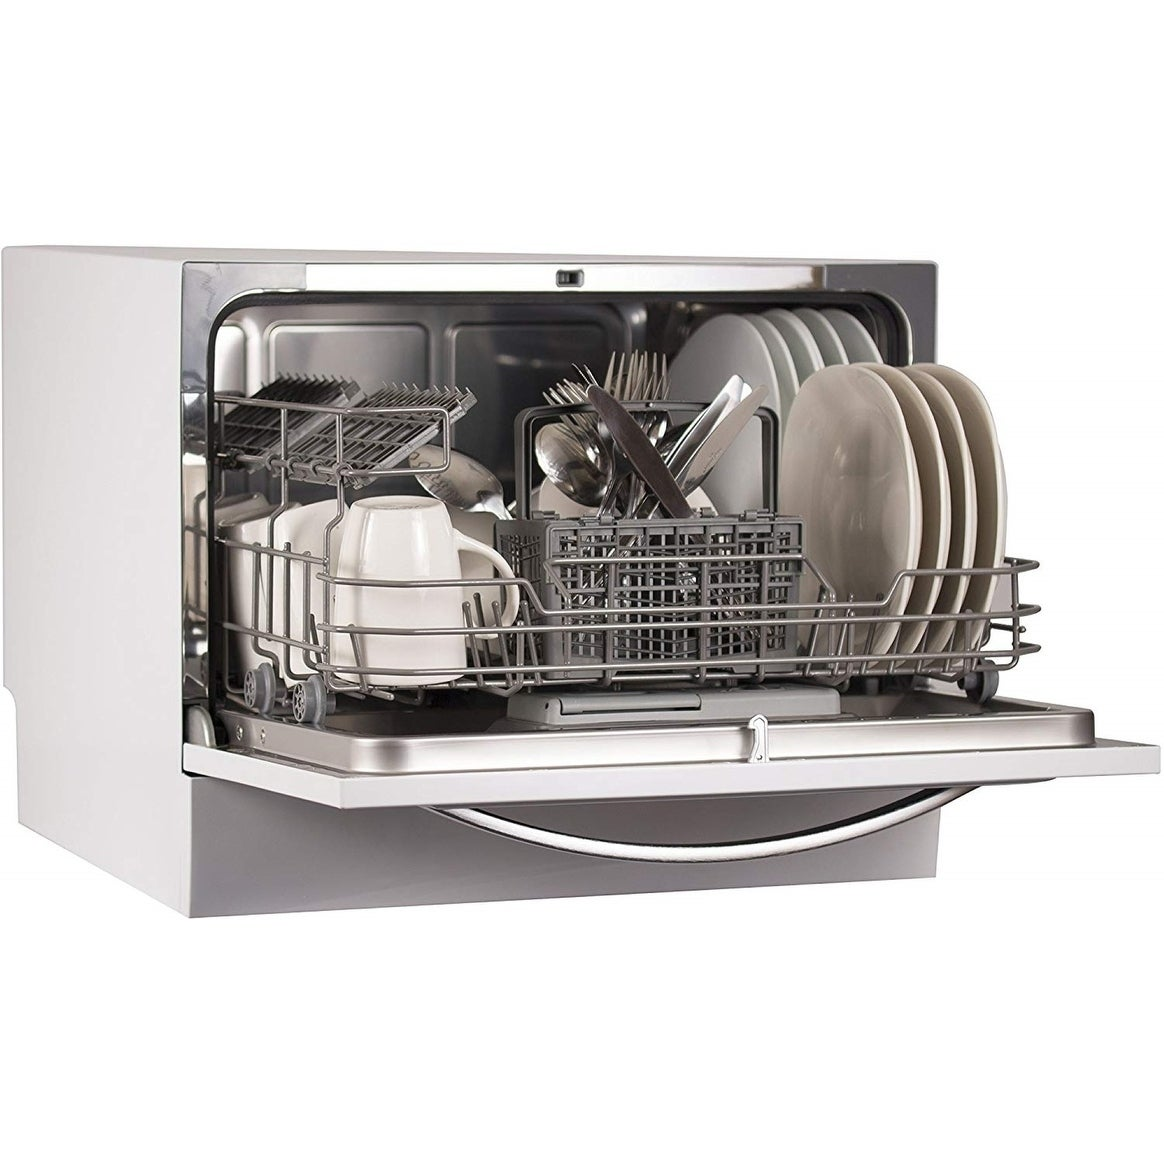 Black & Decker BCD6W 6 Place Setting Compact Countertop Dishwasher